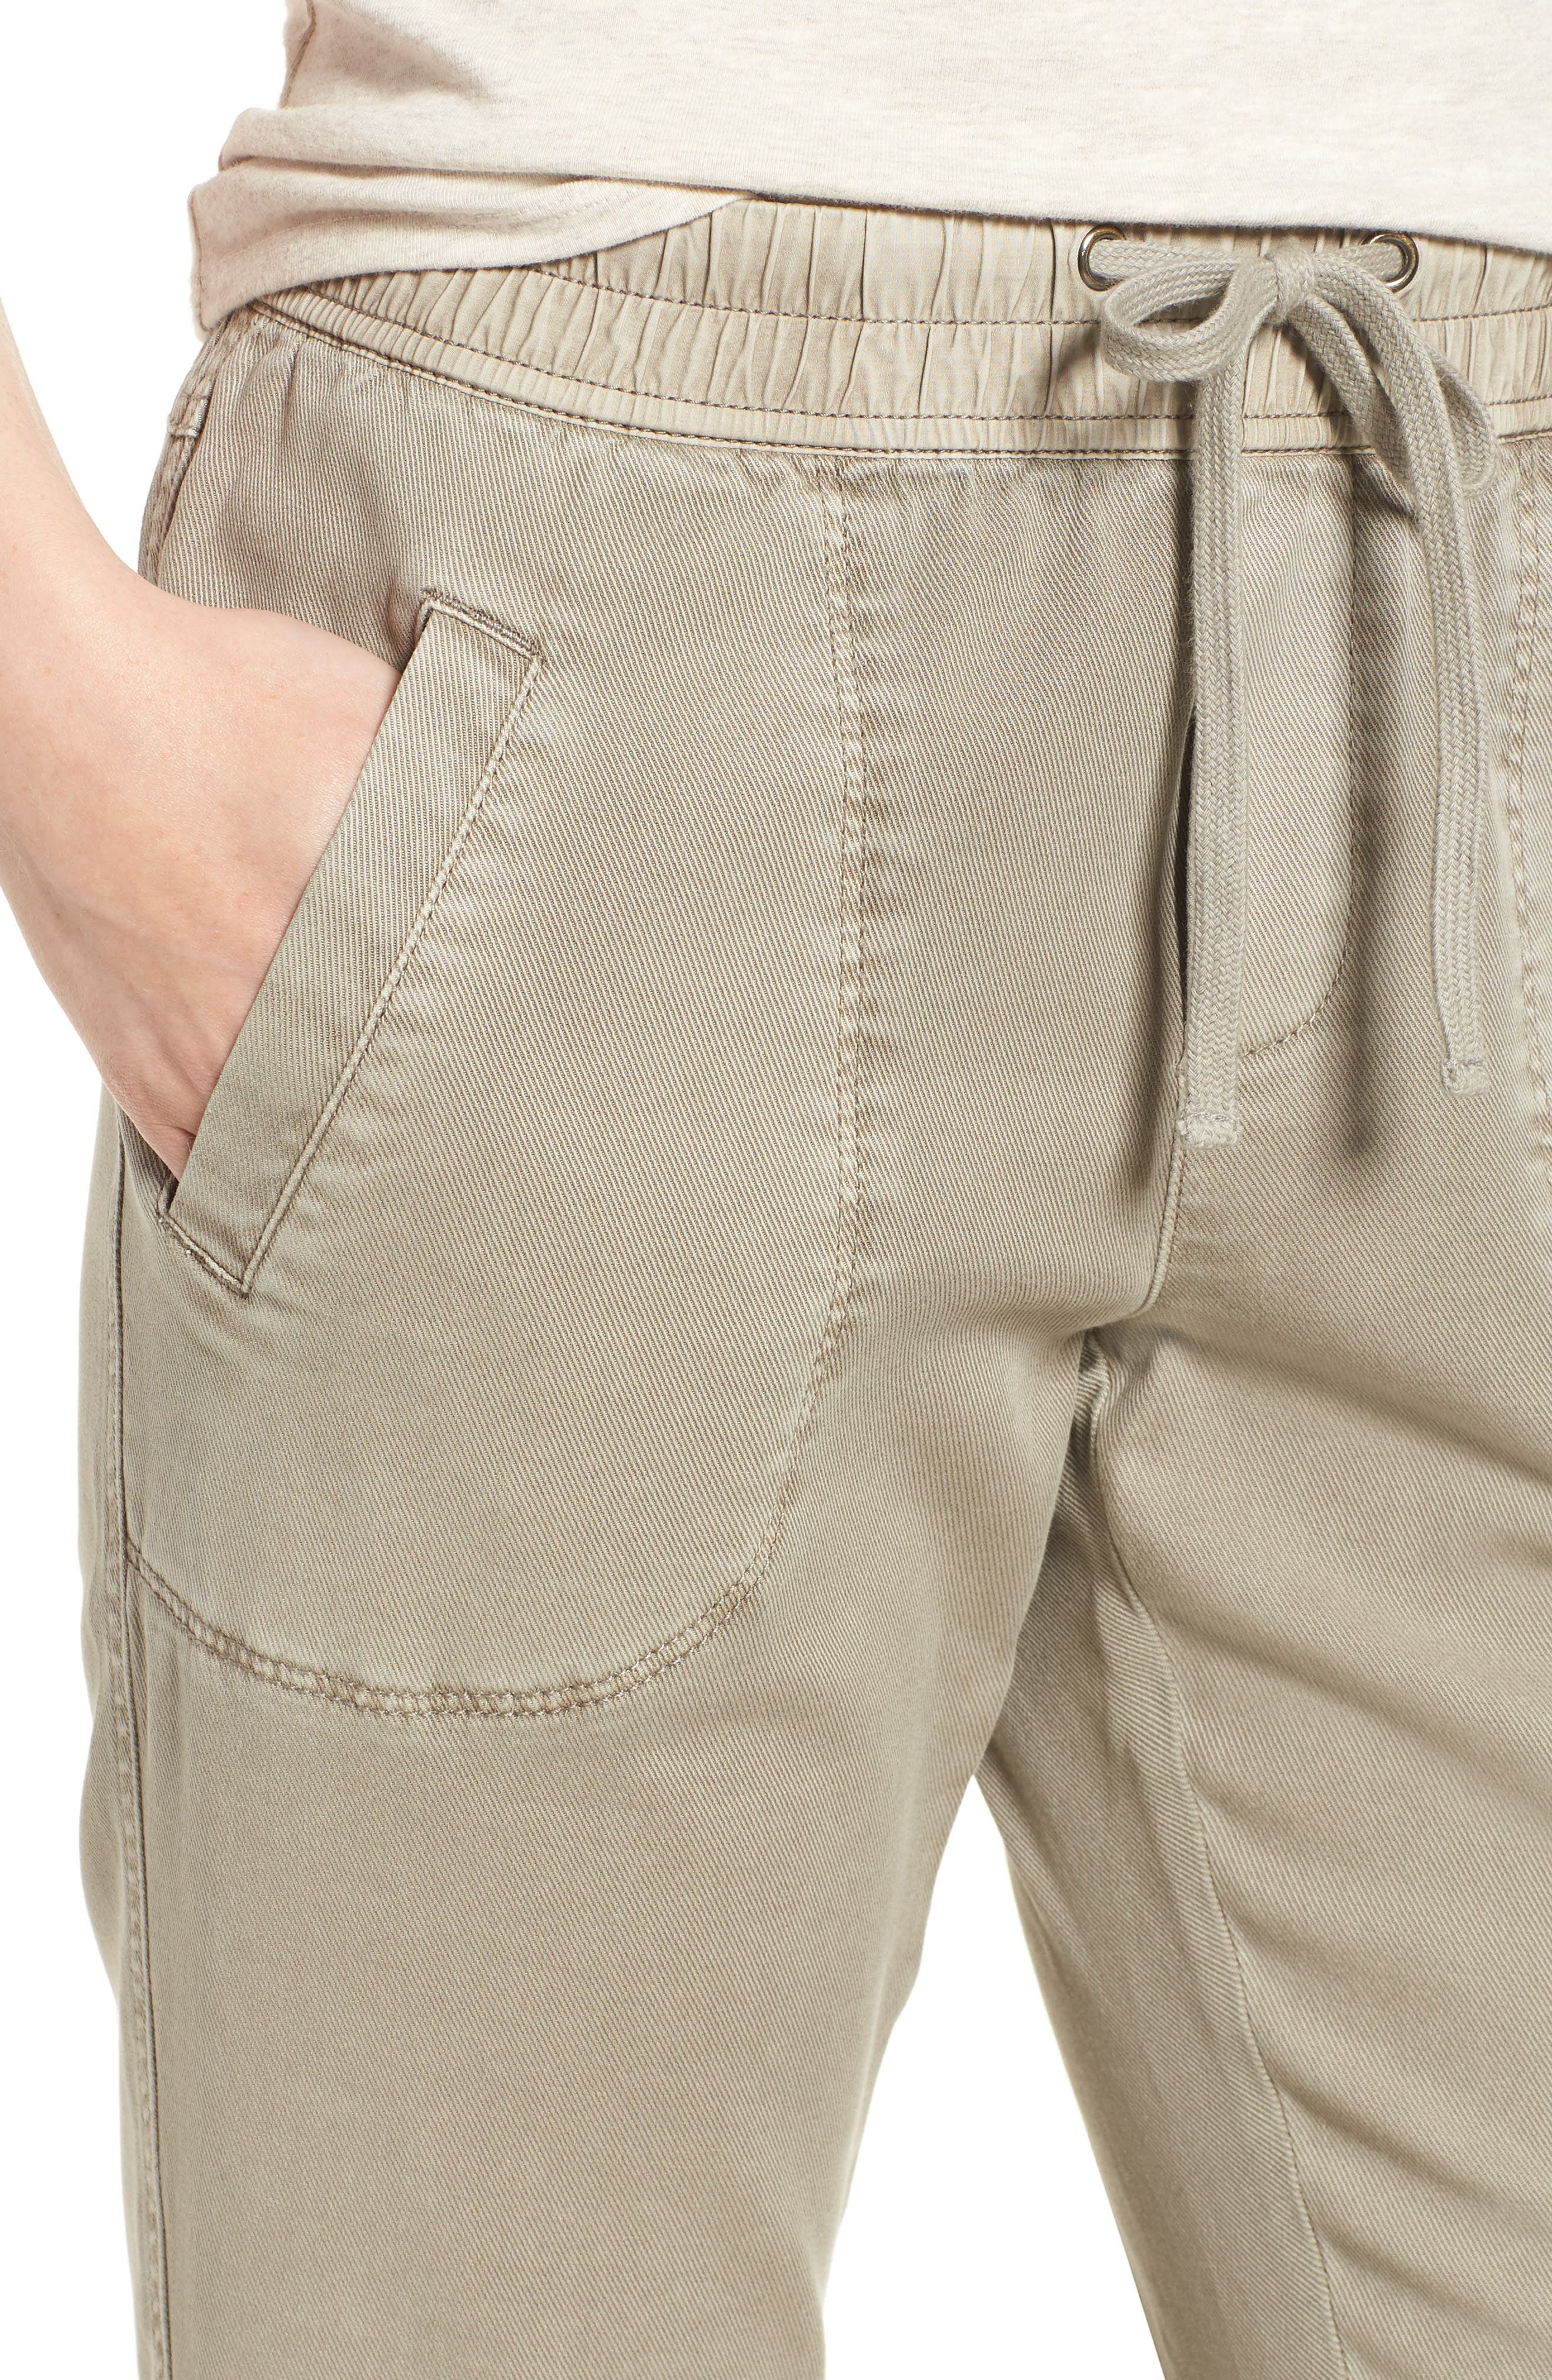 Open Road Ankle Pants,                             Alternate thumbnail 4, color,                             FLAX